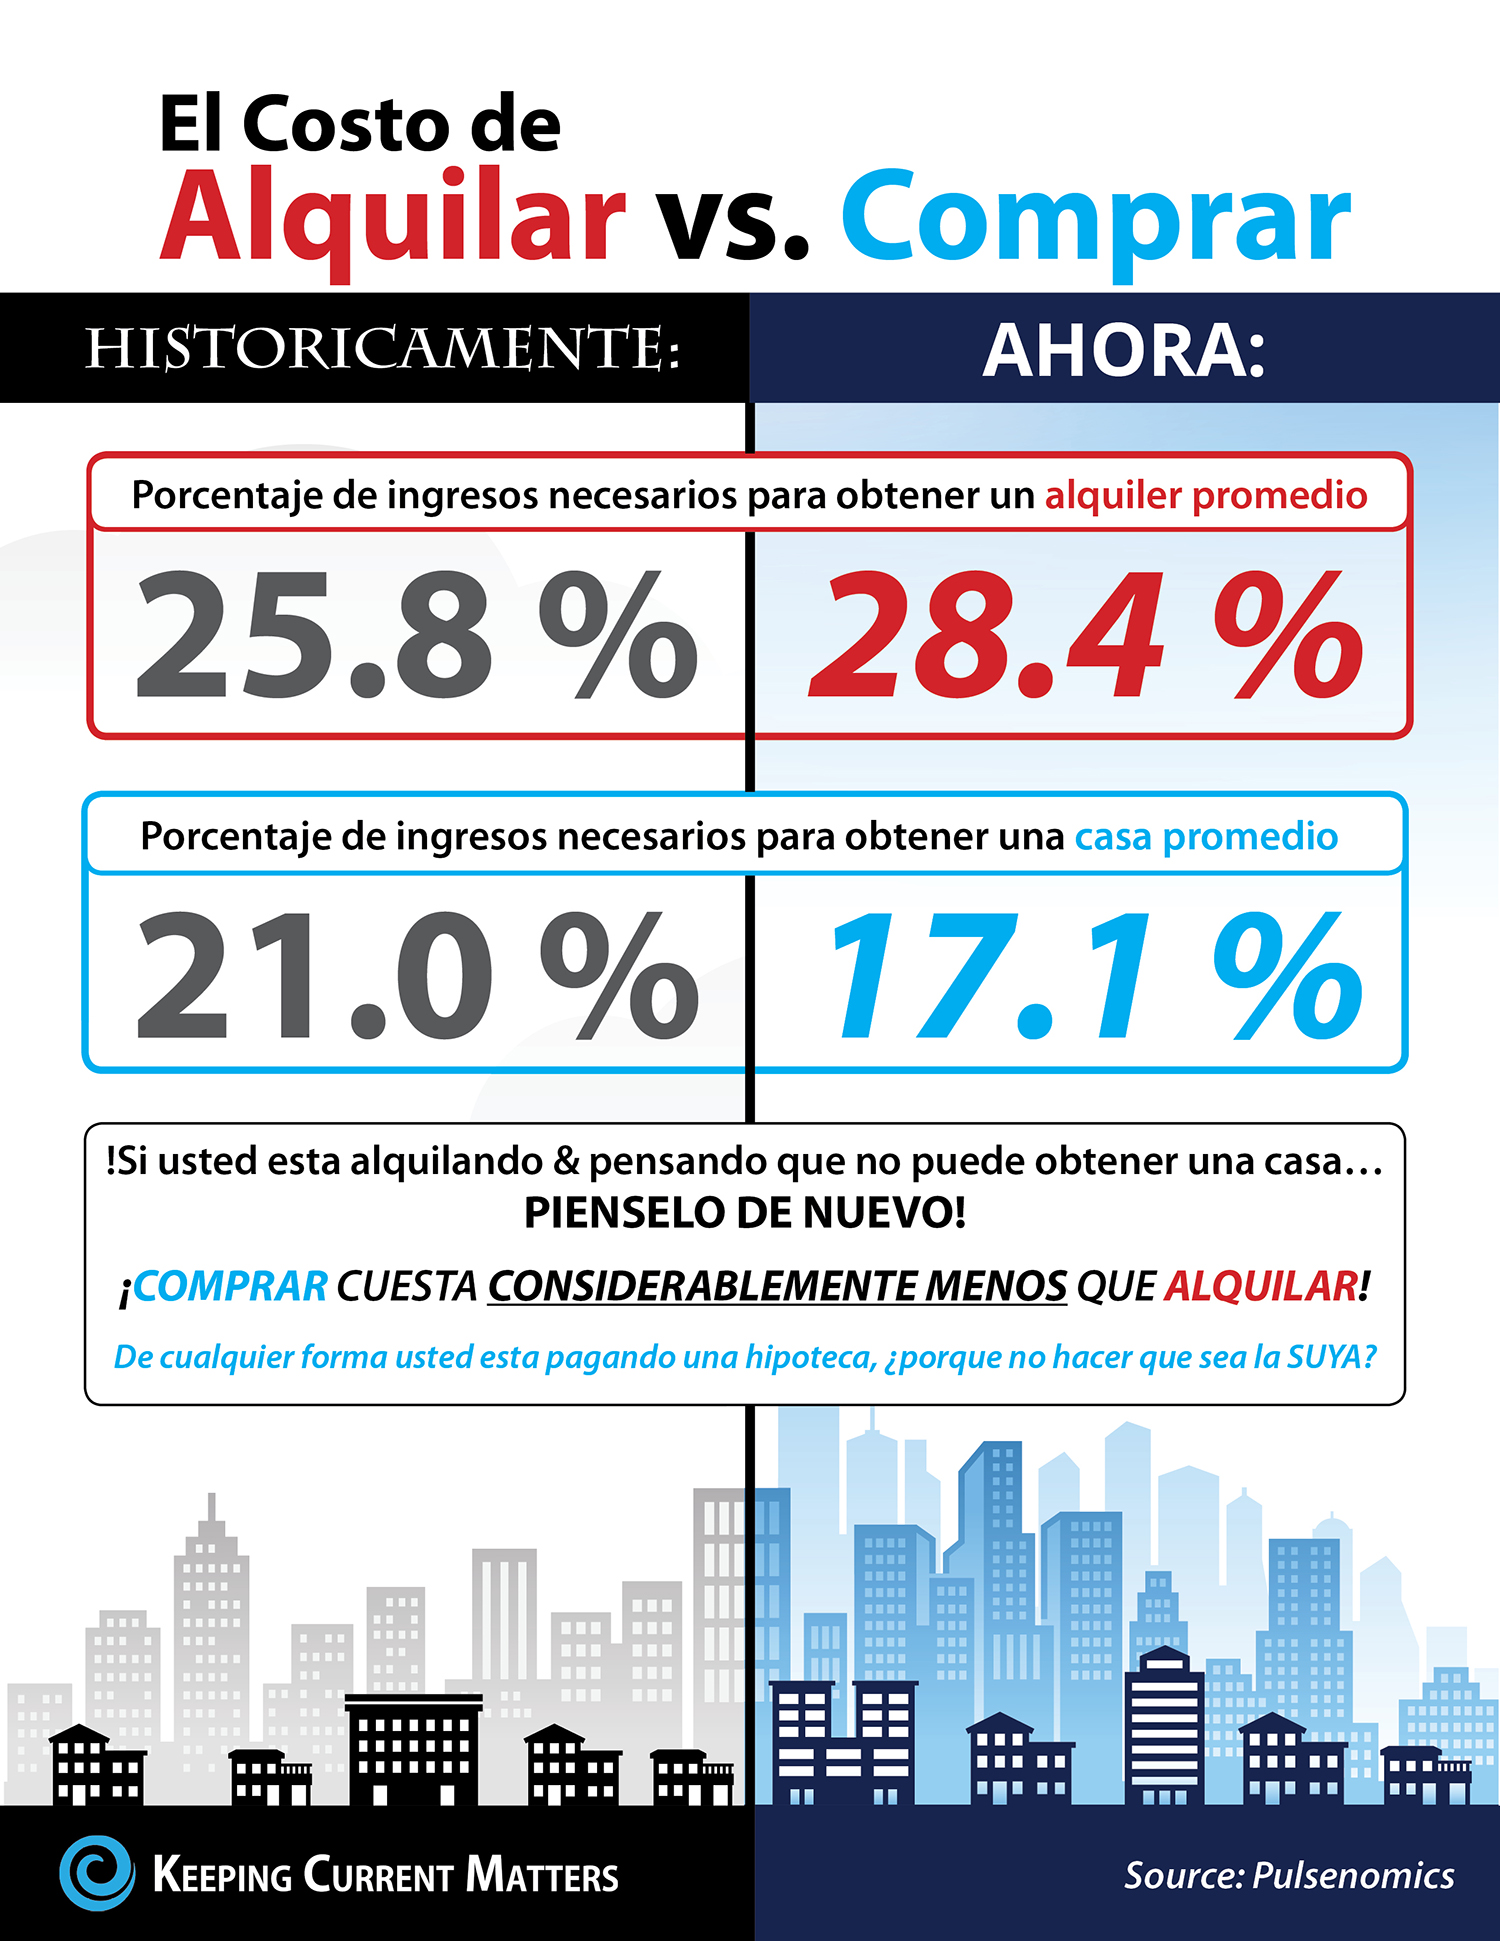 El costo de alquilar vs. Comprar una casa [Infografía] | Keeping Current Matters